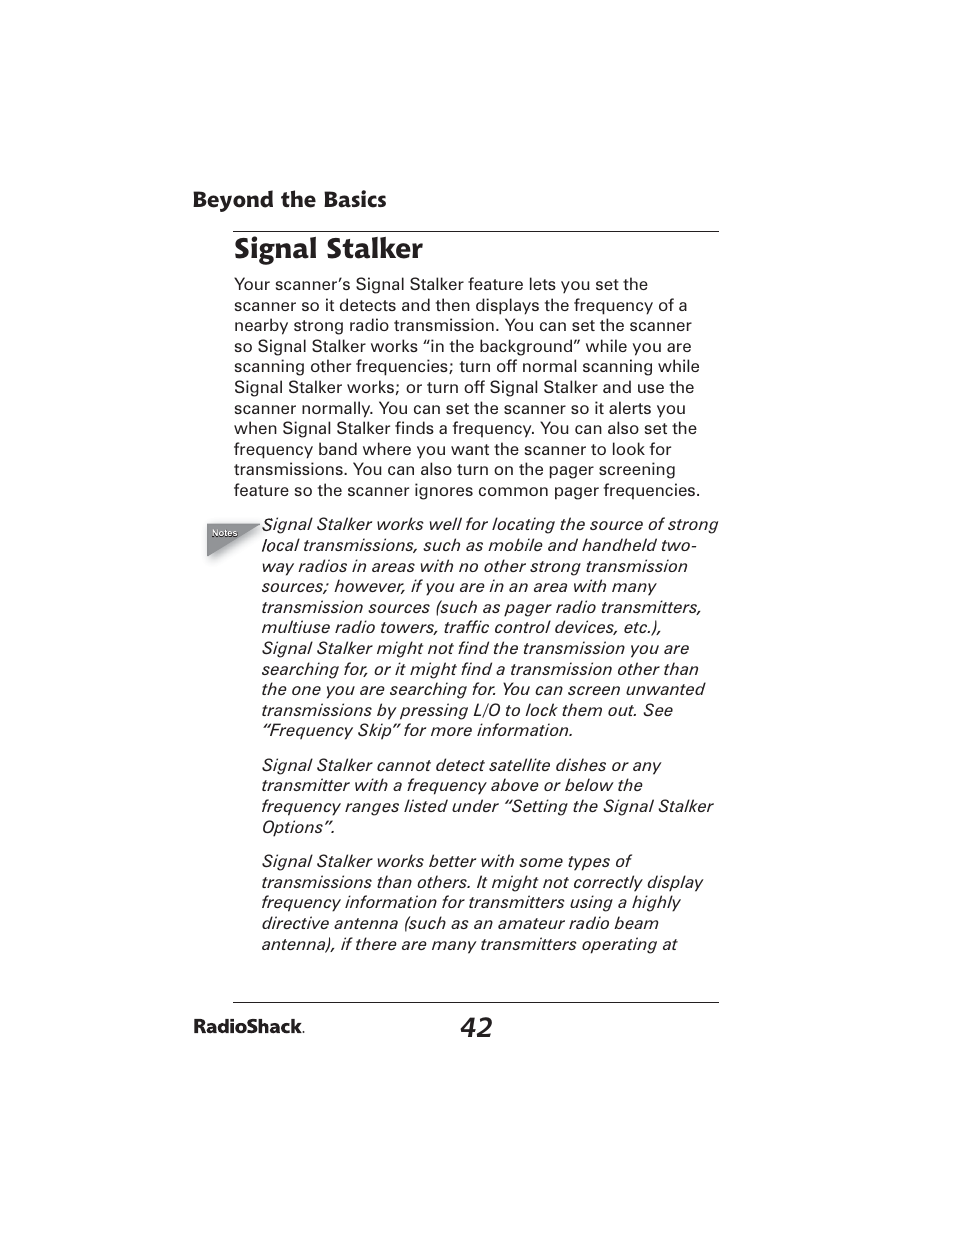 signal stalker radio shack pro 2051 user manual page 42 84 rh manualsdir com Radio Shack Scanners Radio Shack Scanner Antenna